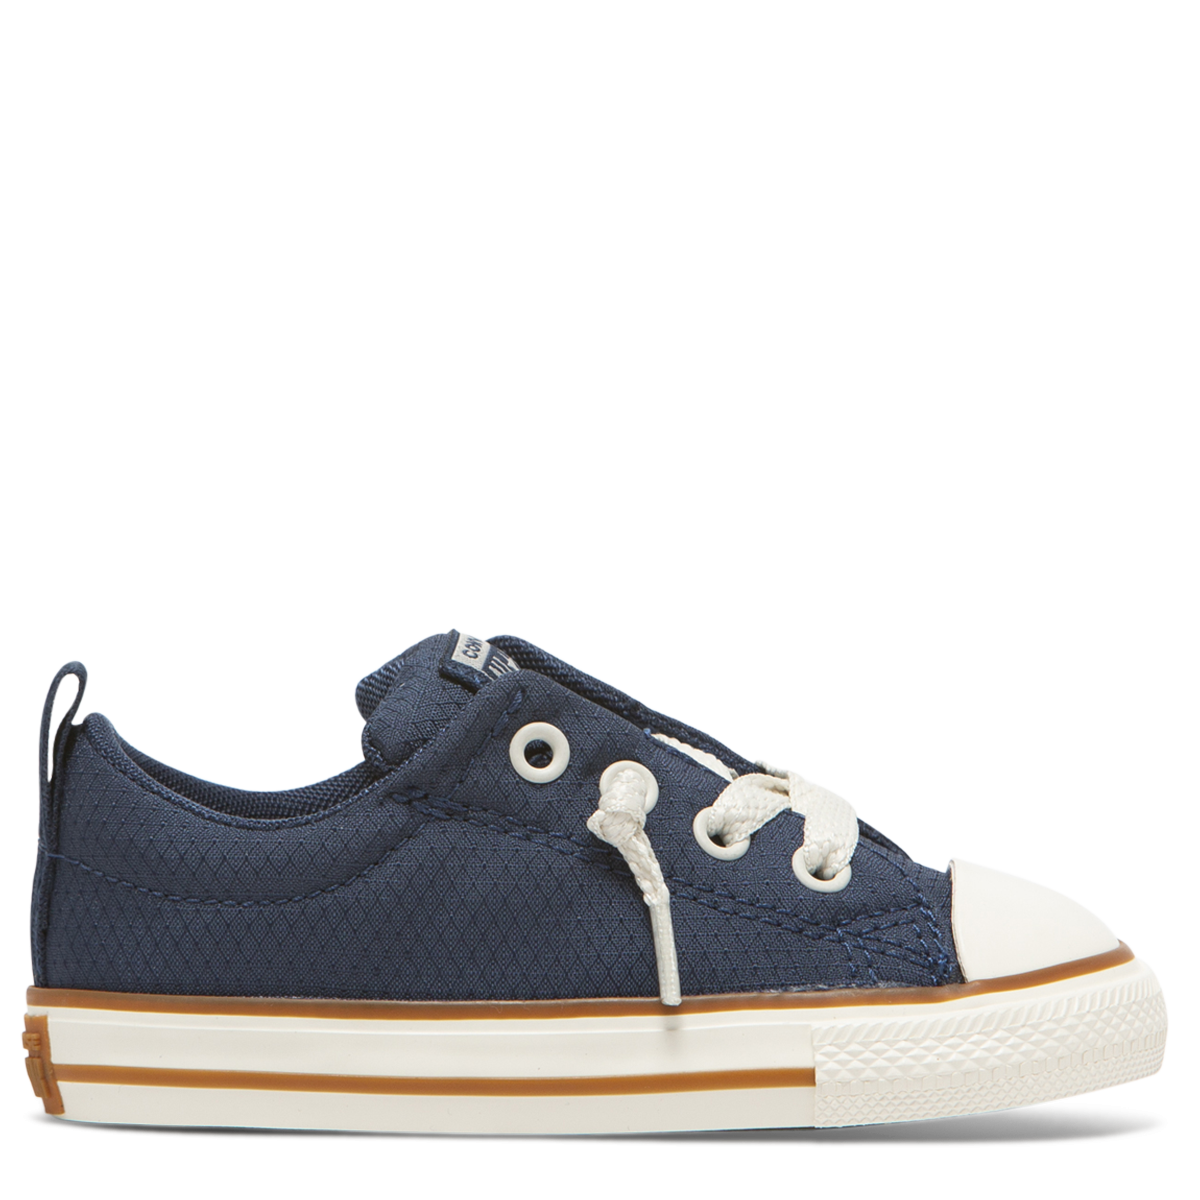 3dfacf3b4b1f Converse Chuck Taylor All Star Street Pinstripe Toddler Low Top Navy 7 –  Famous Rock Shop